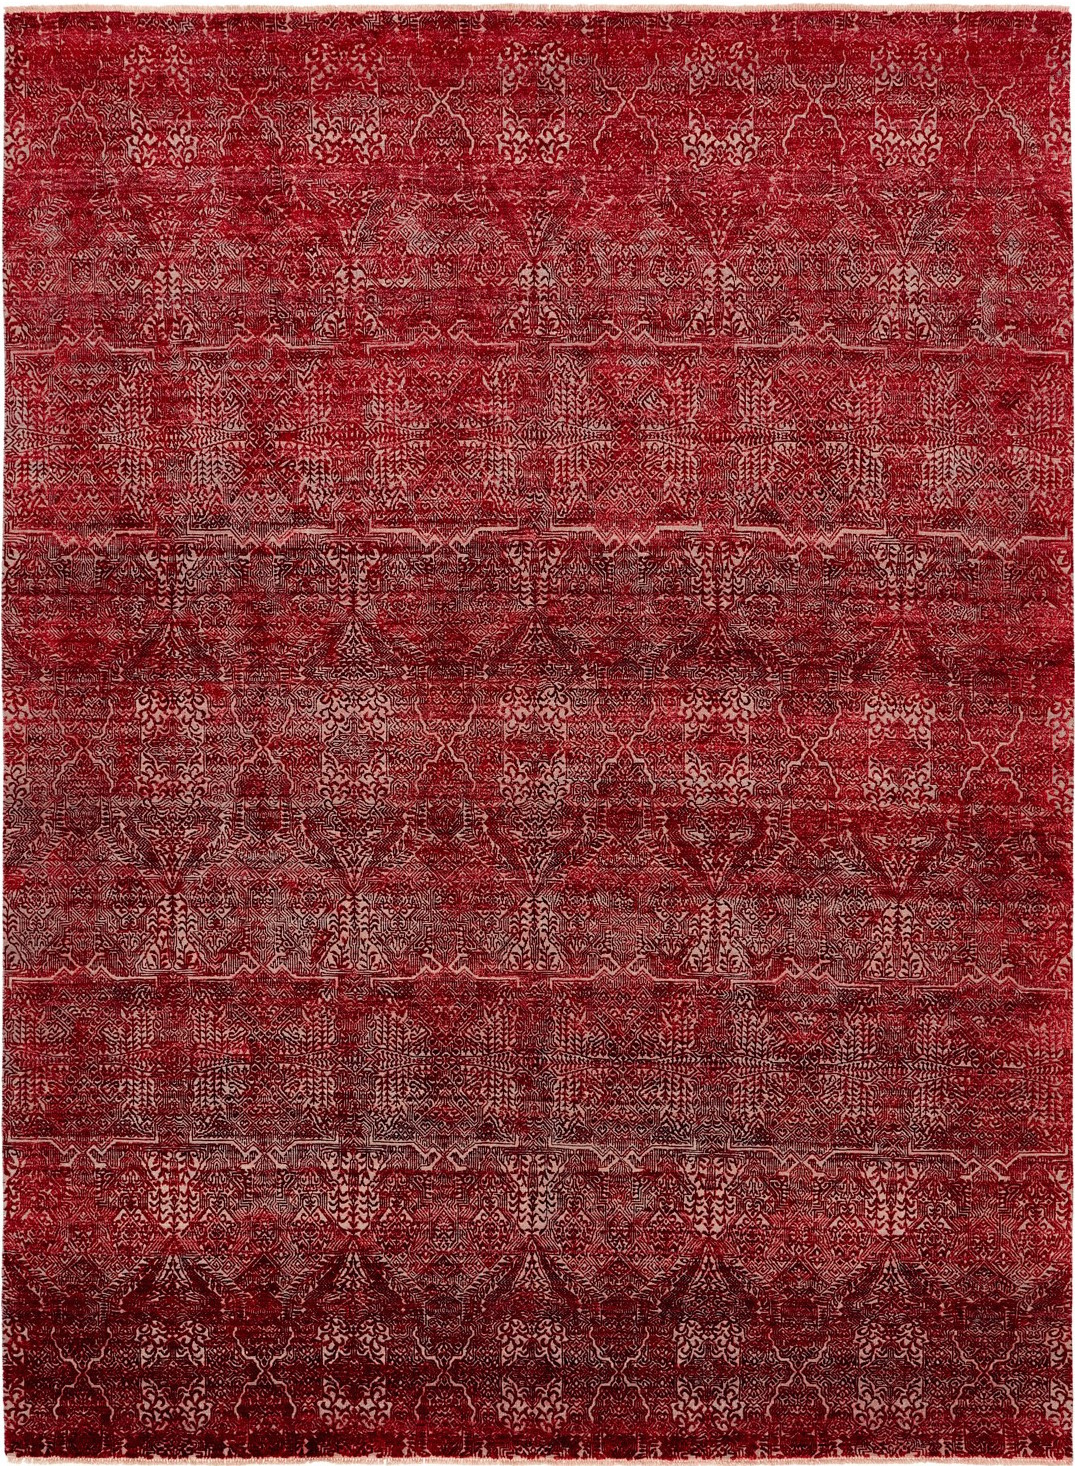 20 best red rugs - red runners and area rugs SVFAUWK